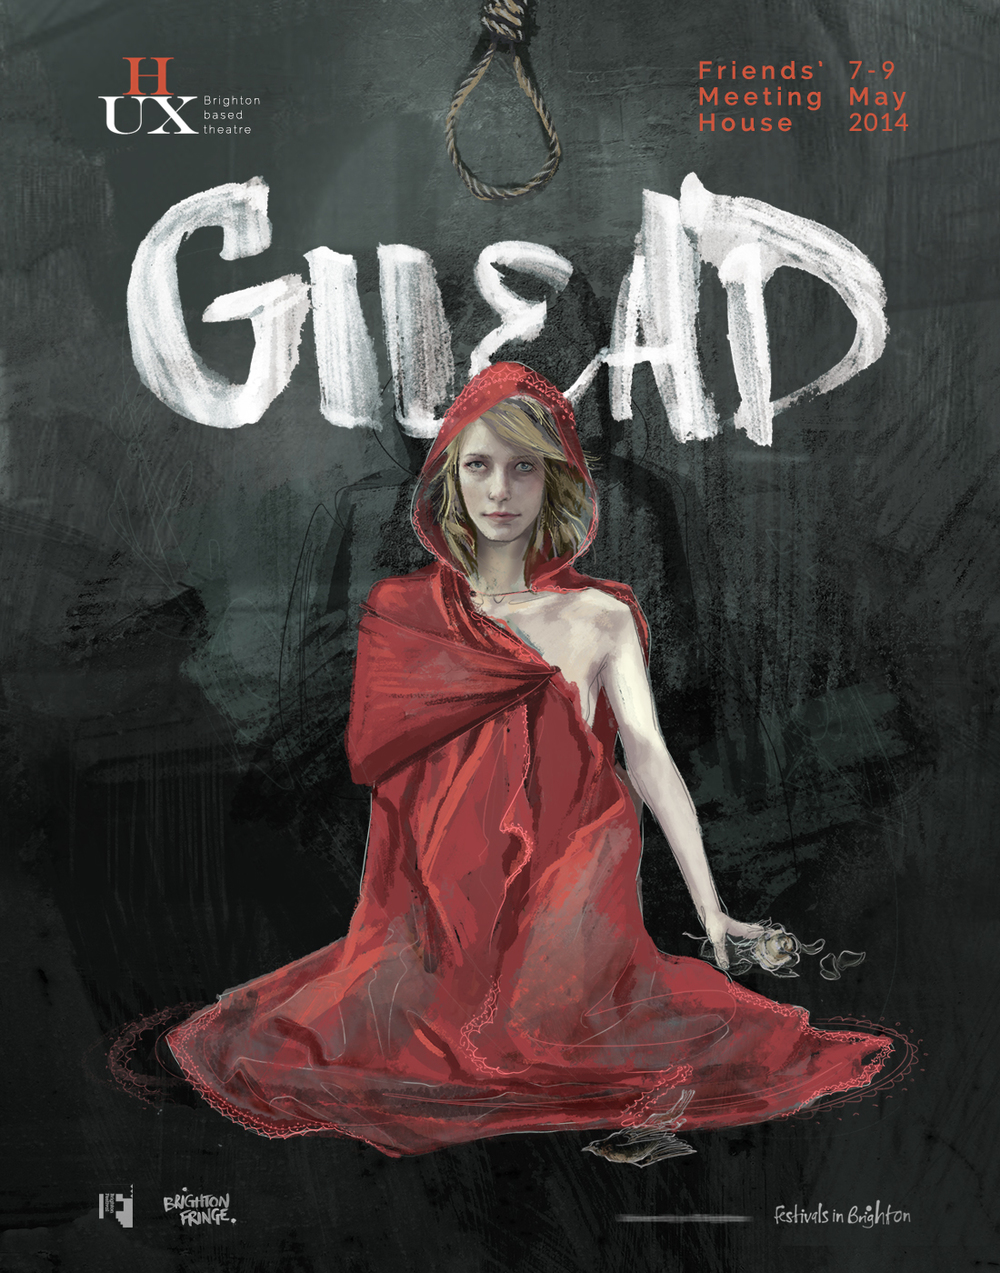 Gilead_project-stage-2.jpg